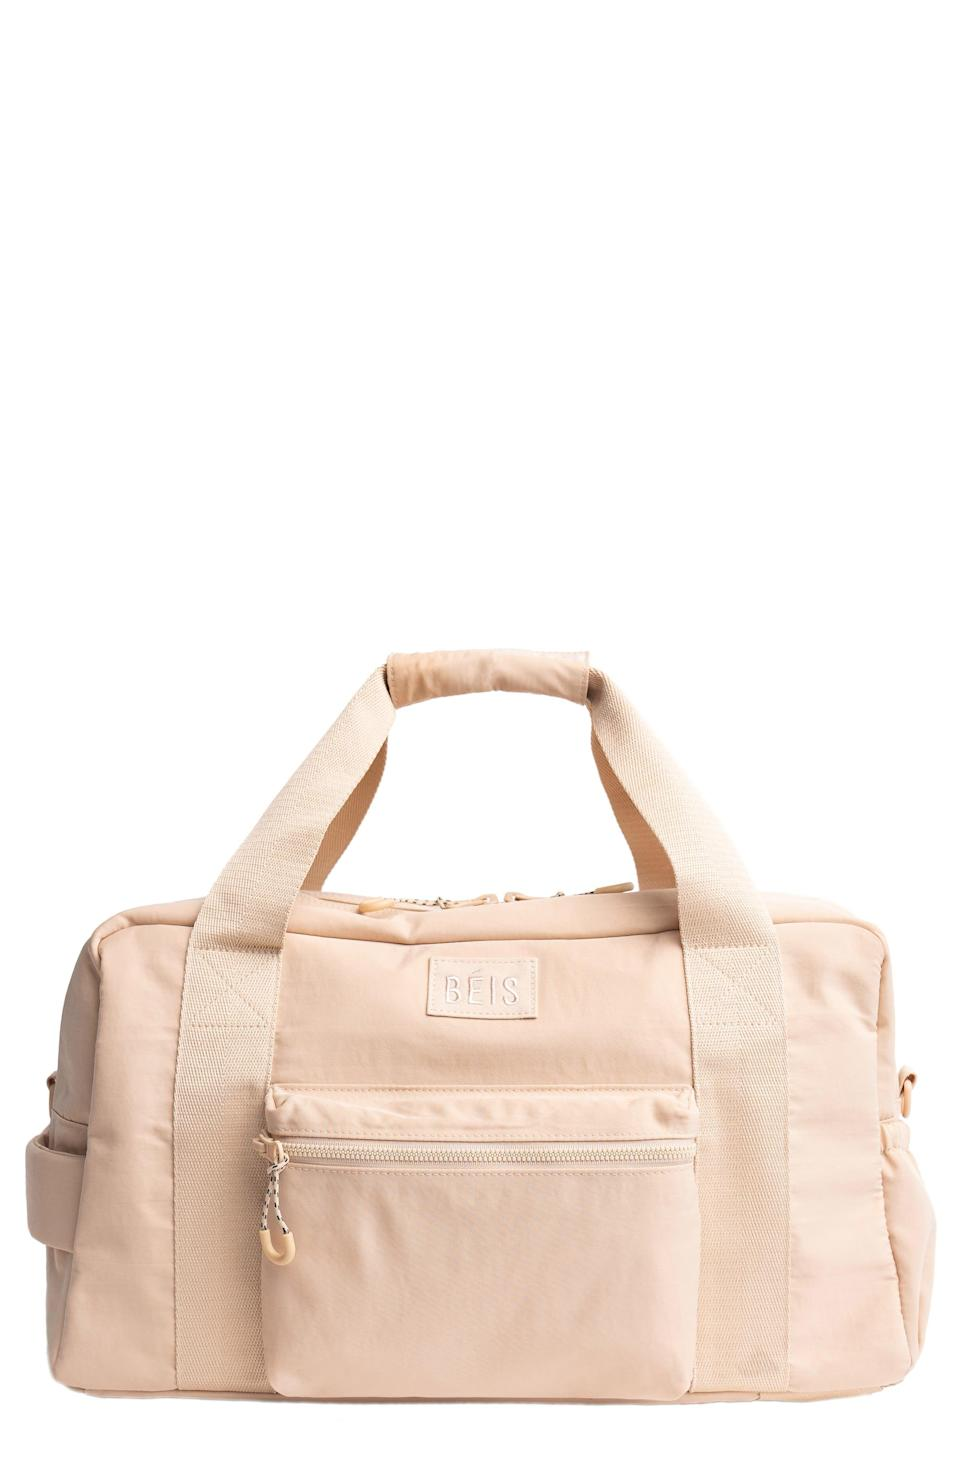 """<p><strong>Béis</strong></p><p>nordstrom.com</p><p><strong>$88.00</strong></p><p><a href=""""https://go.redirectingat.com?id=74968X1596630&url=https%3A%2F%2Fwww.nordstrom.com%2Fs%2Fbeis-the-convertible-duffle-bag%2F5892465&sref=https%3A%2F%2Fwww.cosmopolitan.com%2Fstyle-beauty%2Ffashion%2Fg36479297%2Fgift-ideas-for-doctors%2F"""" rel=""""nofollow noopener"""" target=""""_blank"""" data-ylk=""""slk:Shop Now"""" class=""""link rapid-noclick-resp"""">Shop Now</a></p><p>This duffel does it all (no, seriously). With pockets, pouches, and compartments galore, plus three different carrying options (you can even pull out hidden straps and wear it as a backpack), it's the perfect commuter bag, weekend bag—you name it.</p>"""